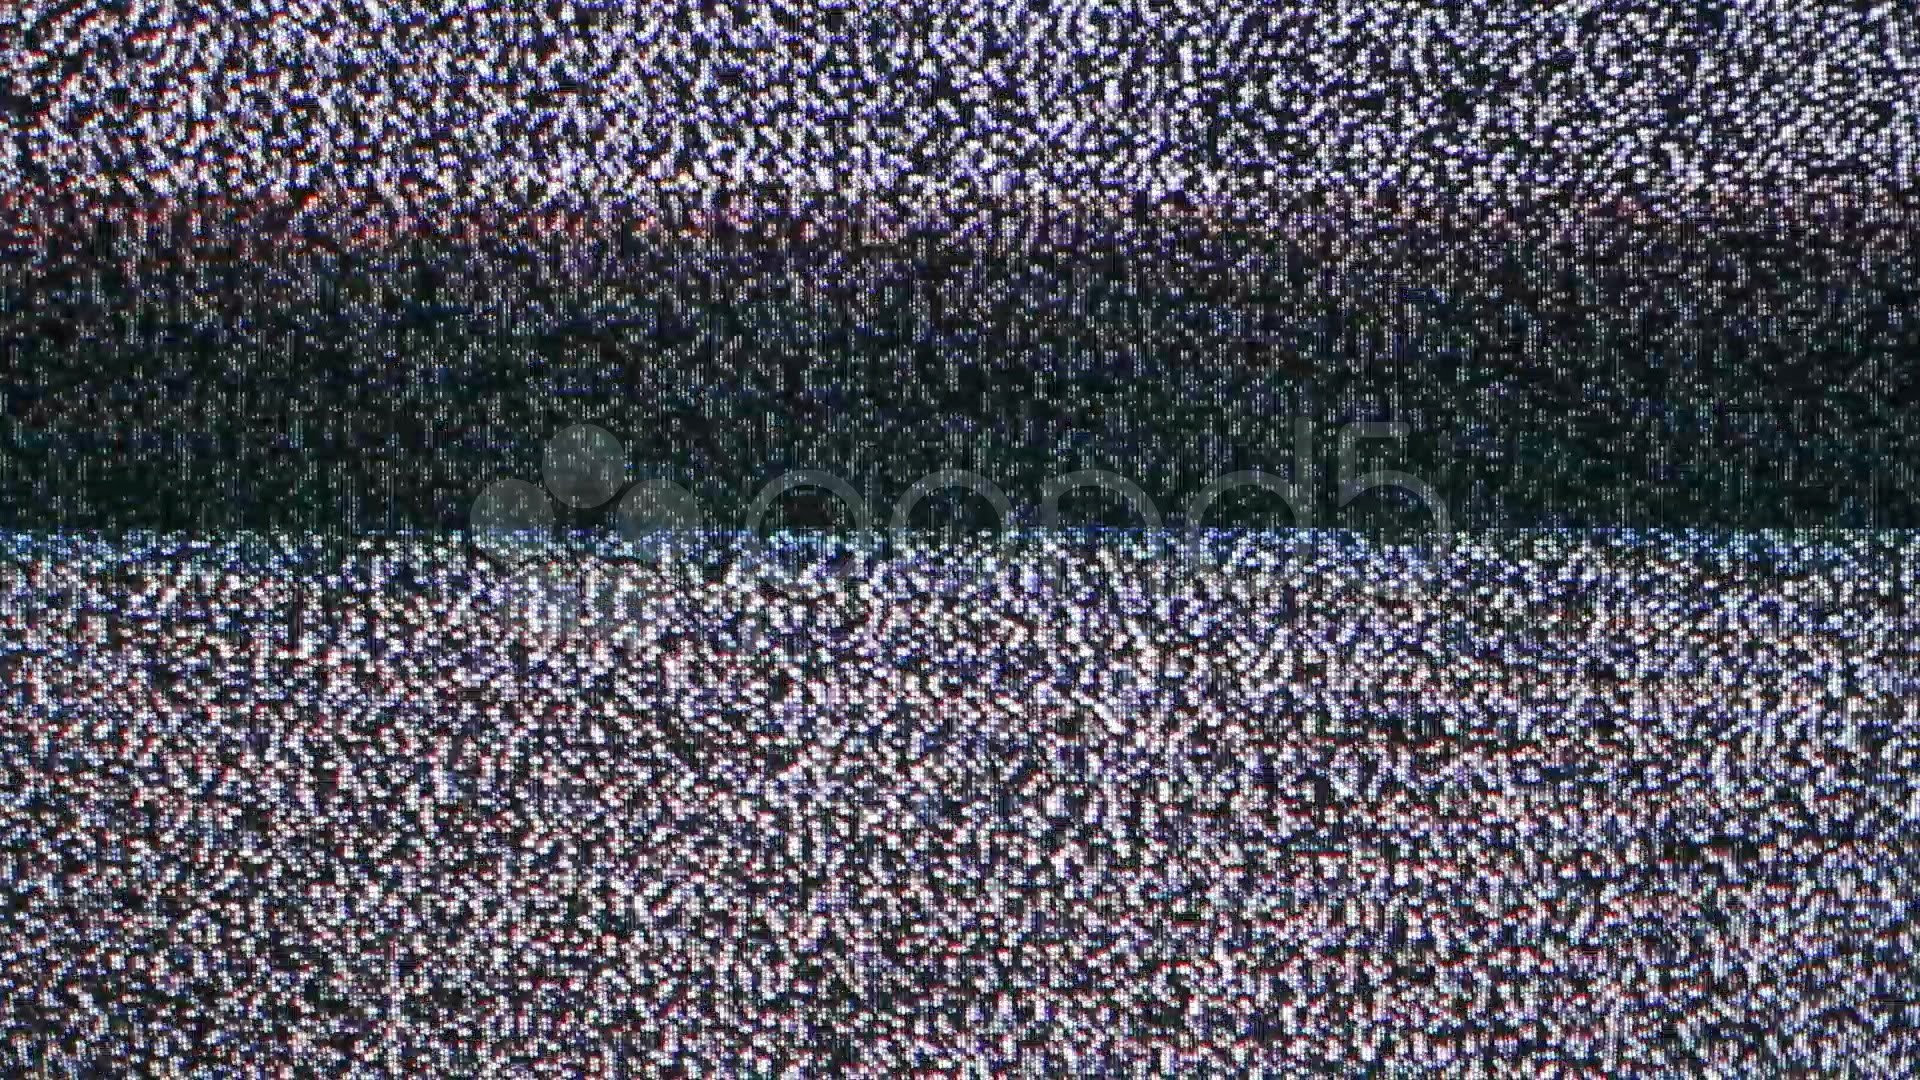 1920x1080 Blank Television Tv Screen With White Noise Or Static Snow And No Signal..  Stock Footage - YouTube